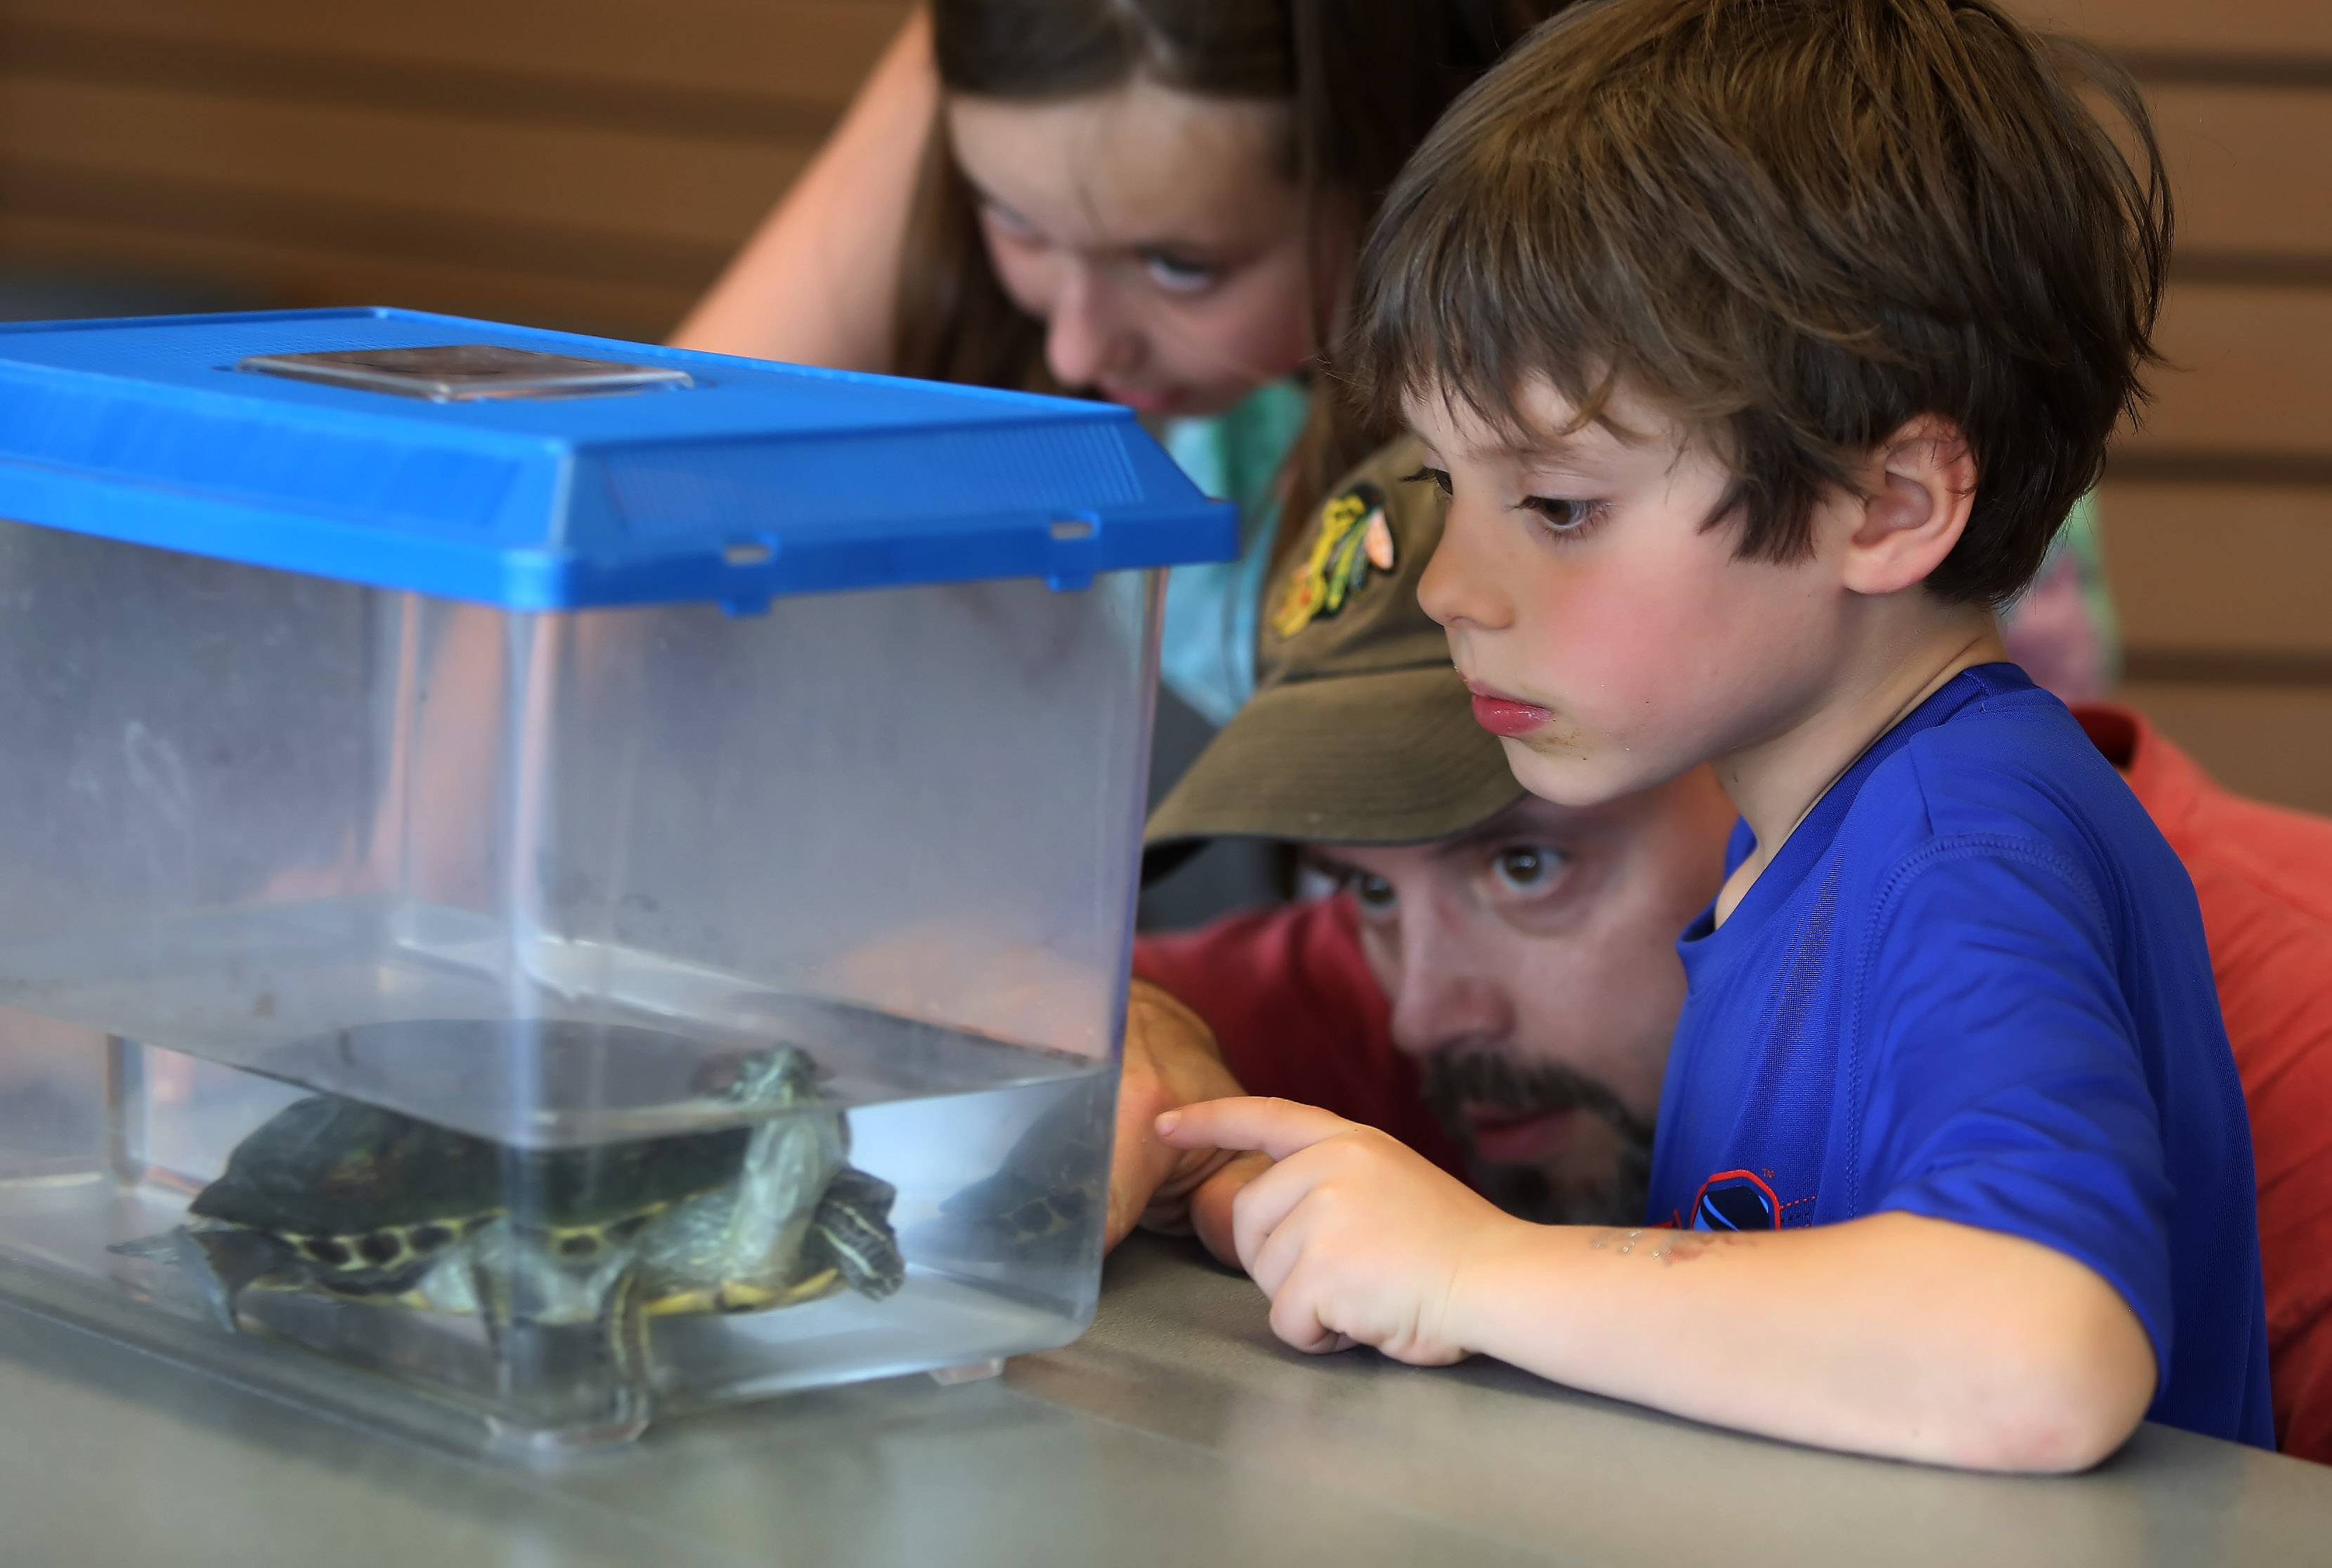 Five-year-old Nathan Mroczek of Lincolnshire looks at a red-eared slider turtle with is father, Tony, and sister, Leia, 10, during the Greet Education Animals program Sunday hosted by the Lake County Forest Preserve District at Ryerson Conversation Area near Riverwoods. The event kicked off a week of programs celebrating Earth Day.